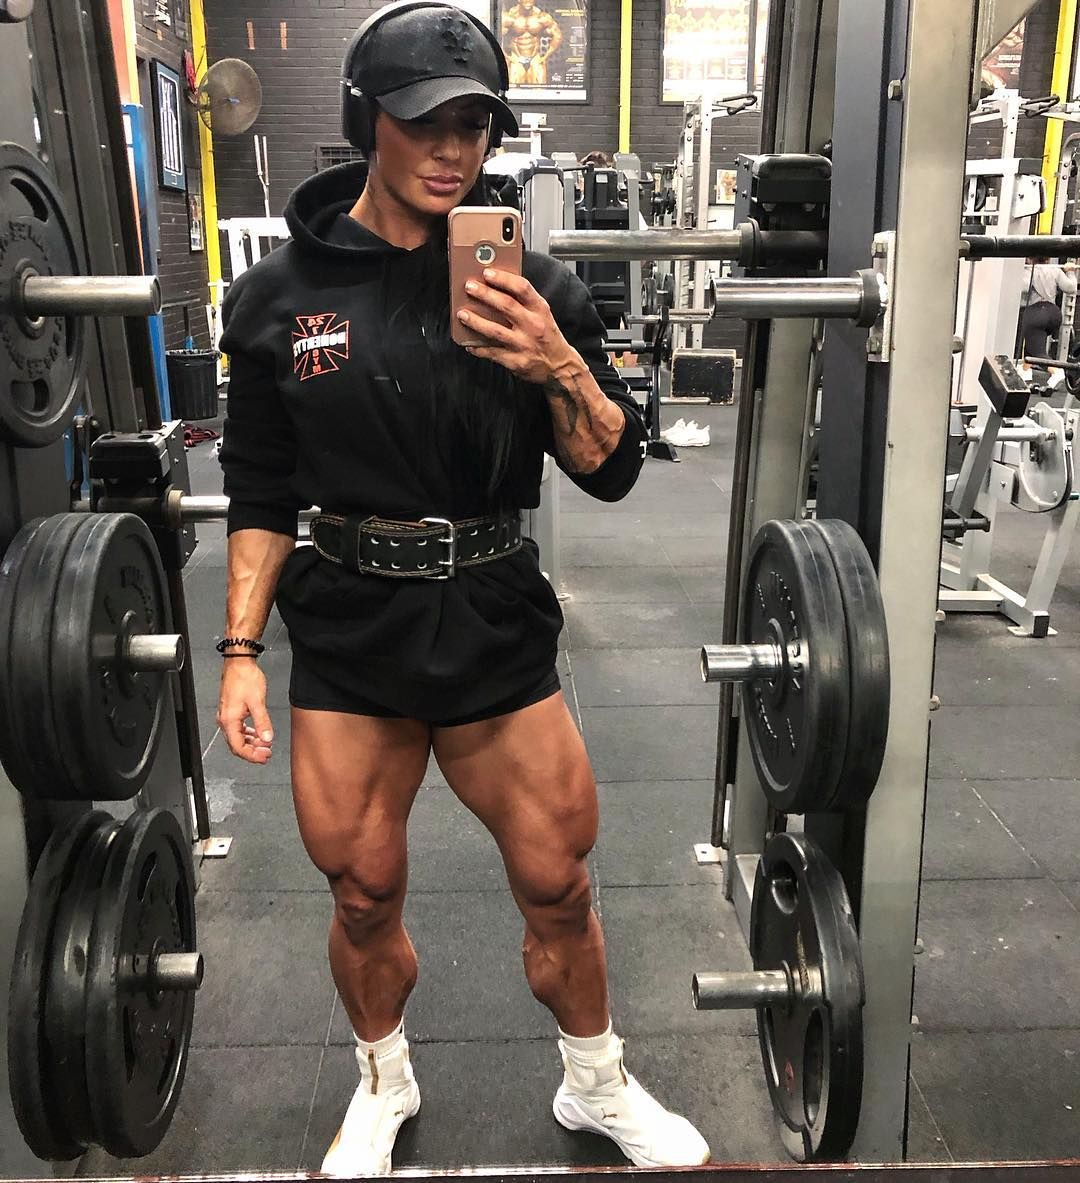 Wanna Train Legs With Me Limited Personal Training Sessions Are Now Available At Doherty S Gym Brun Online Coaching Personal Training Muscle Girls